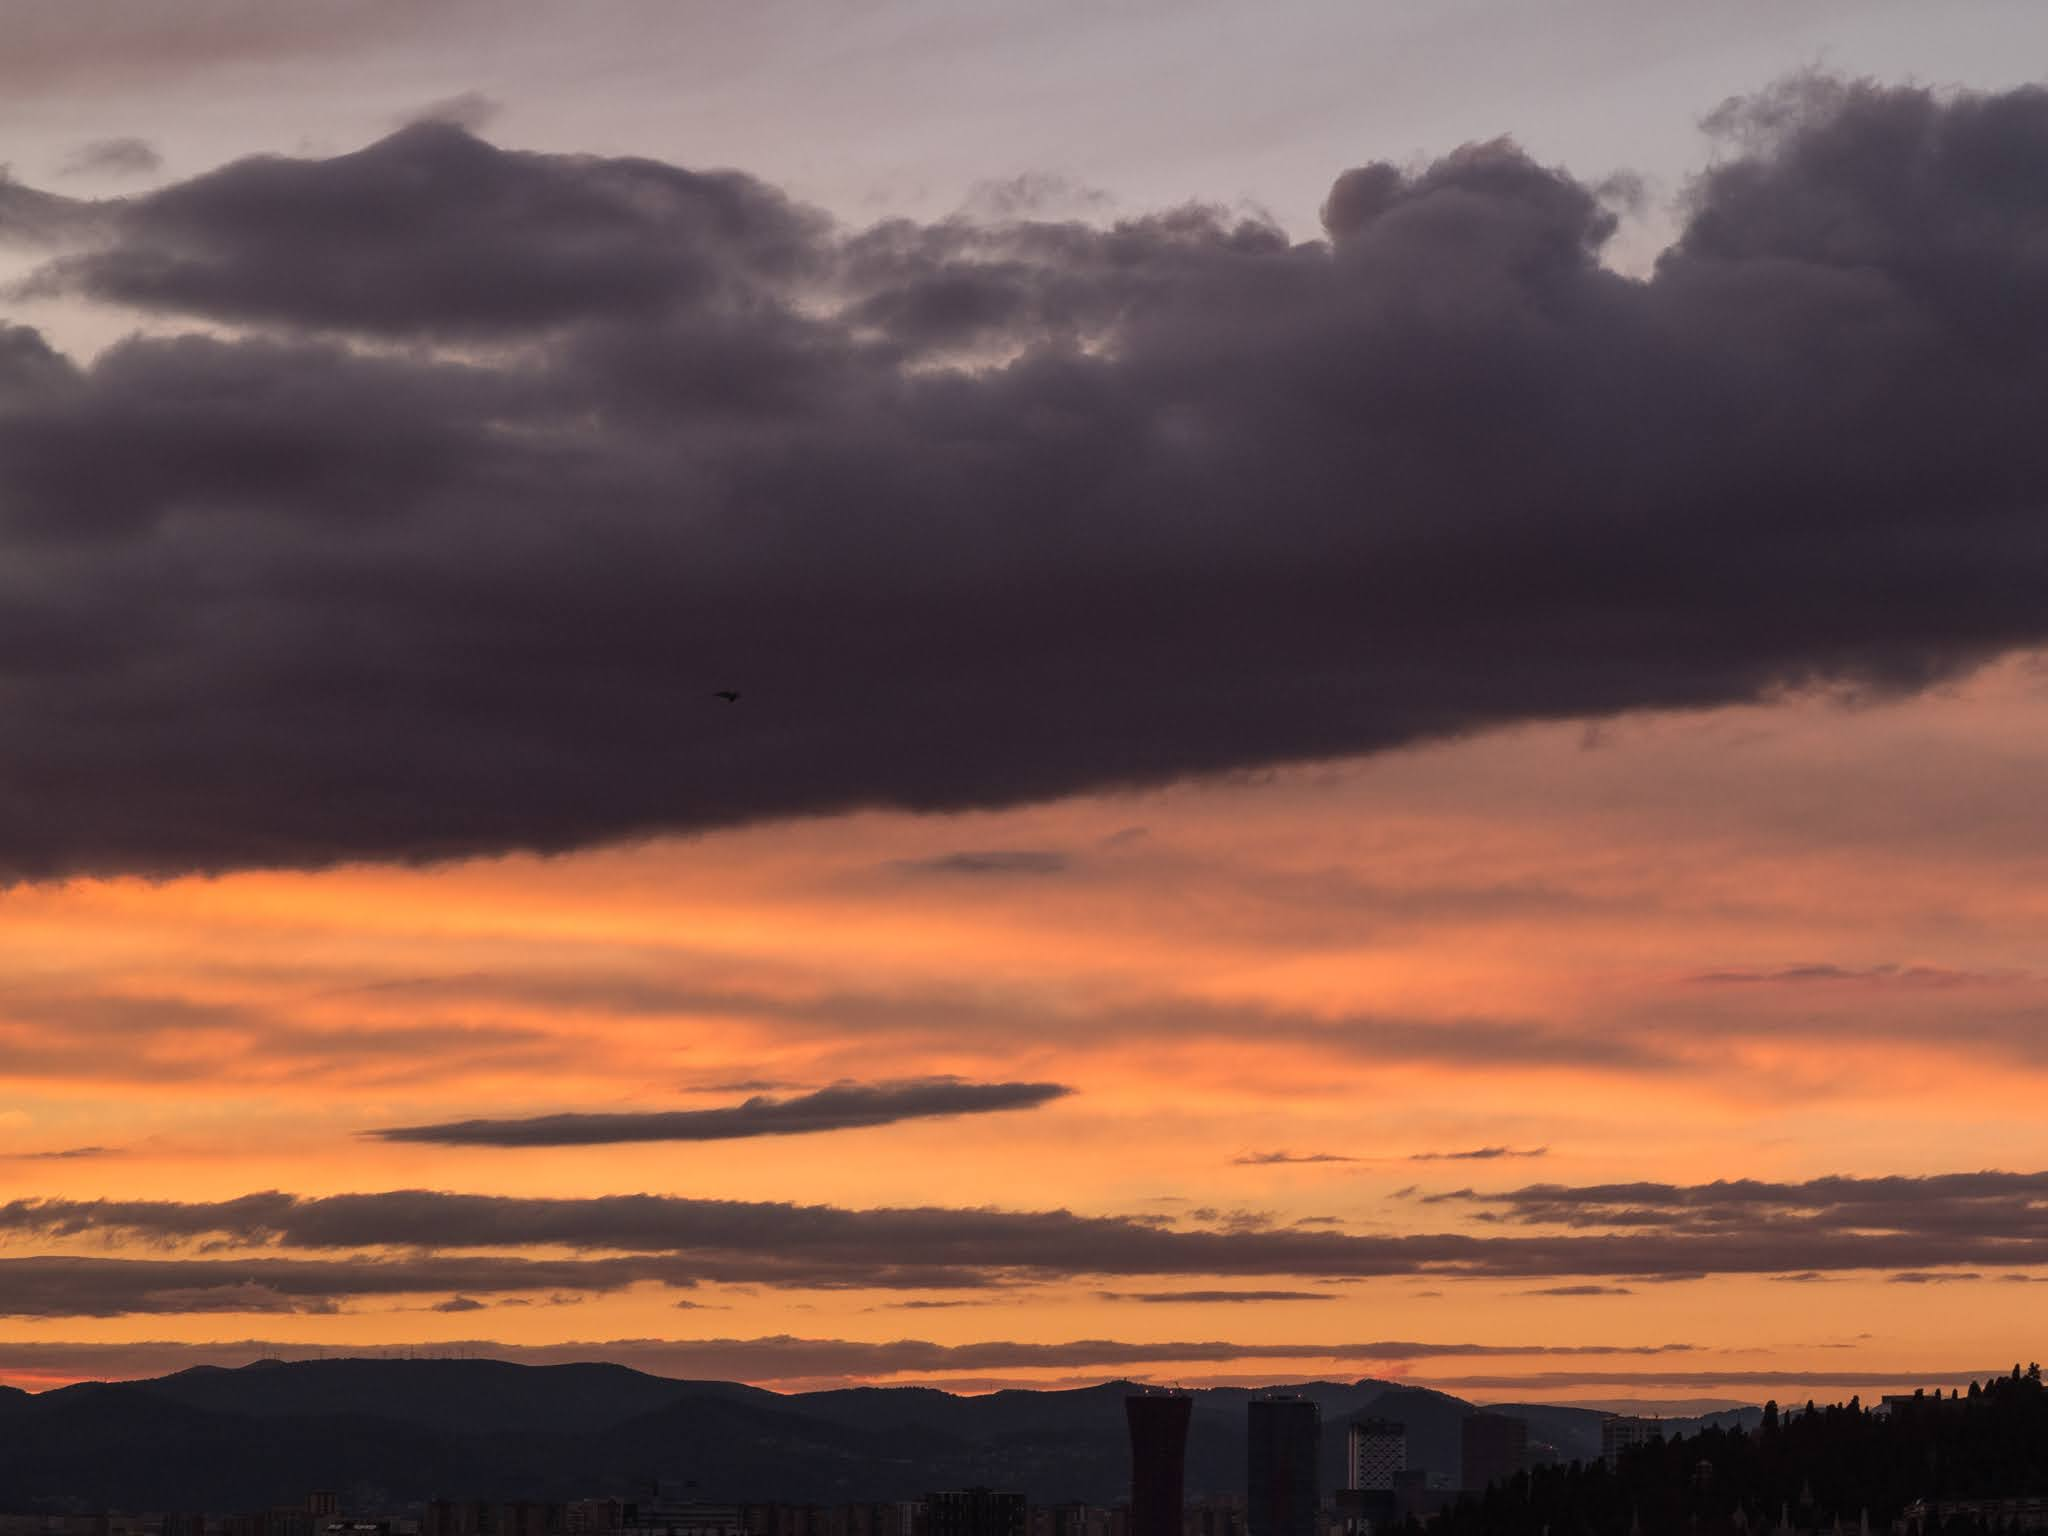 Dramatic sunset clouds over a mountain range as seen from the port of Barcelona.